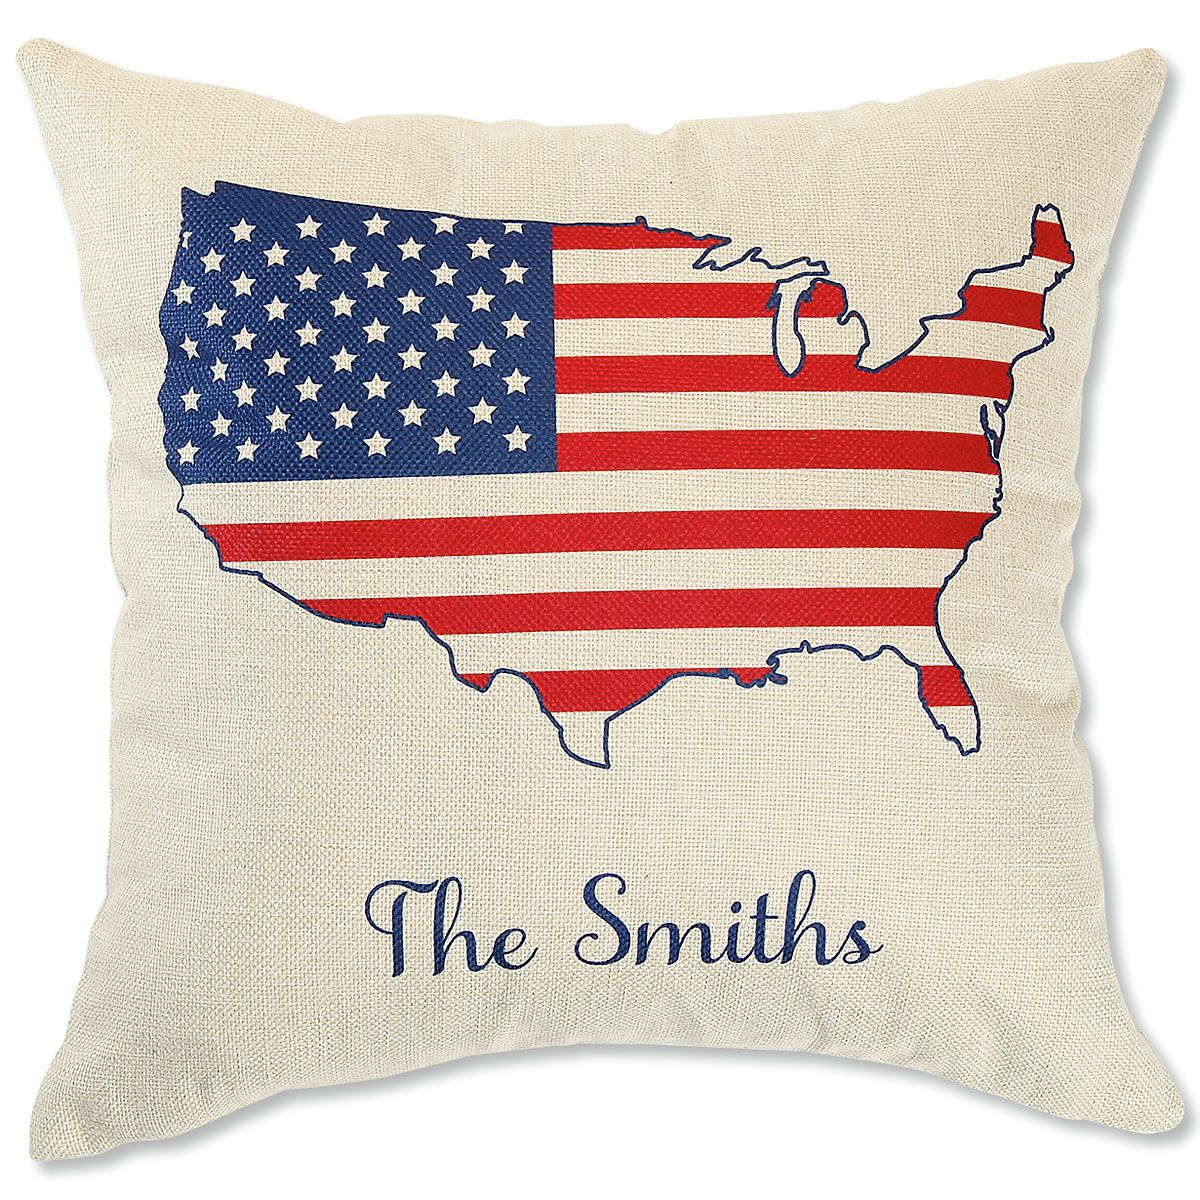 Personalized USA Natural Canvas Pillow